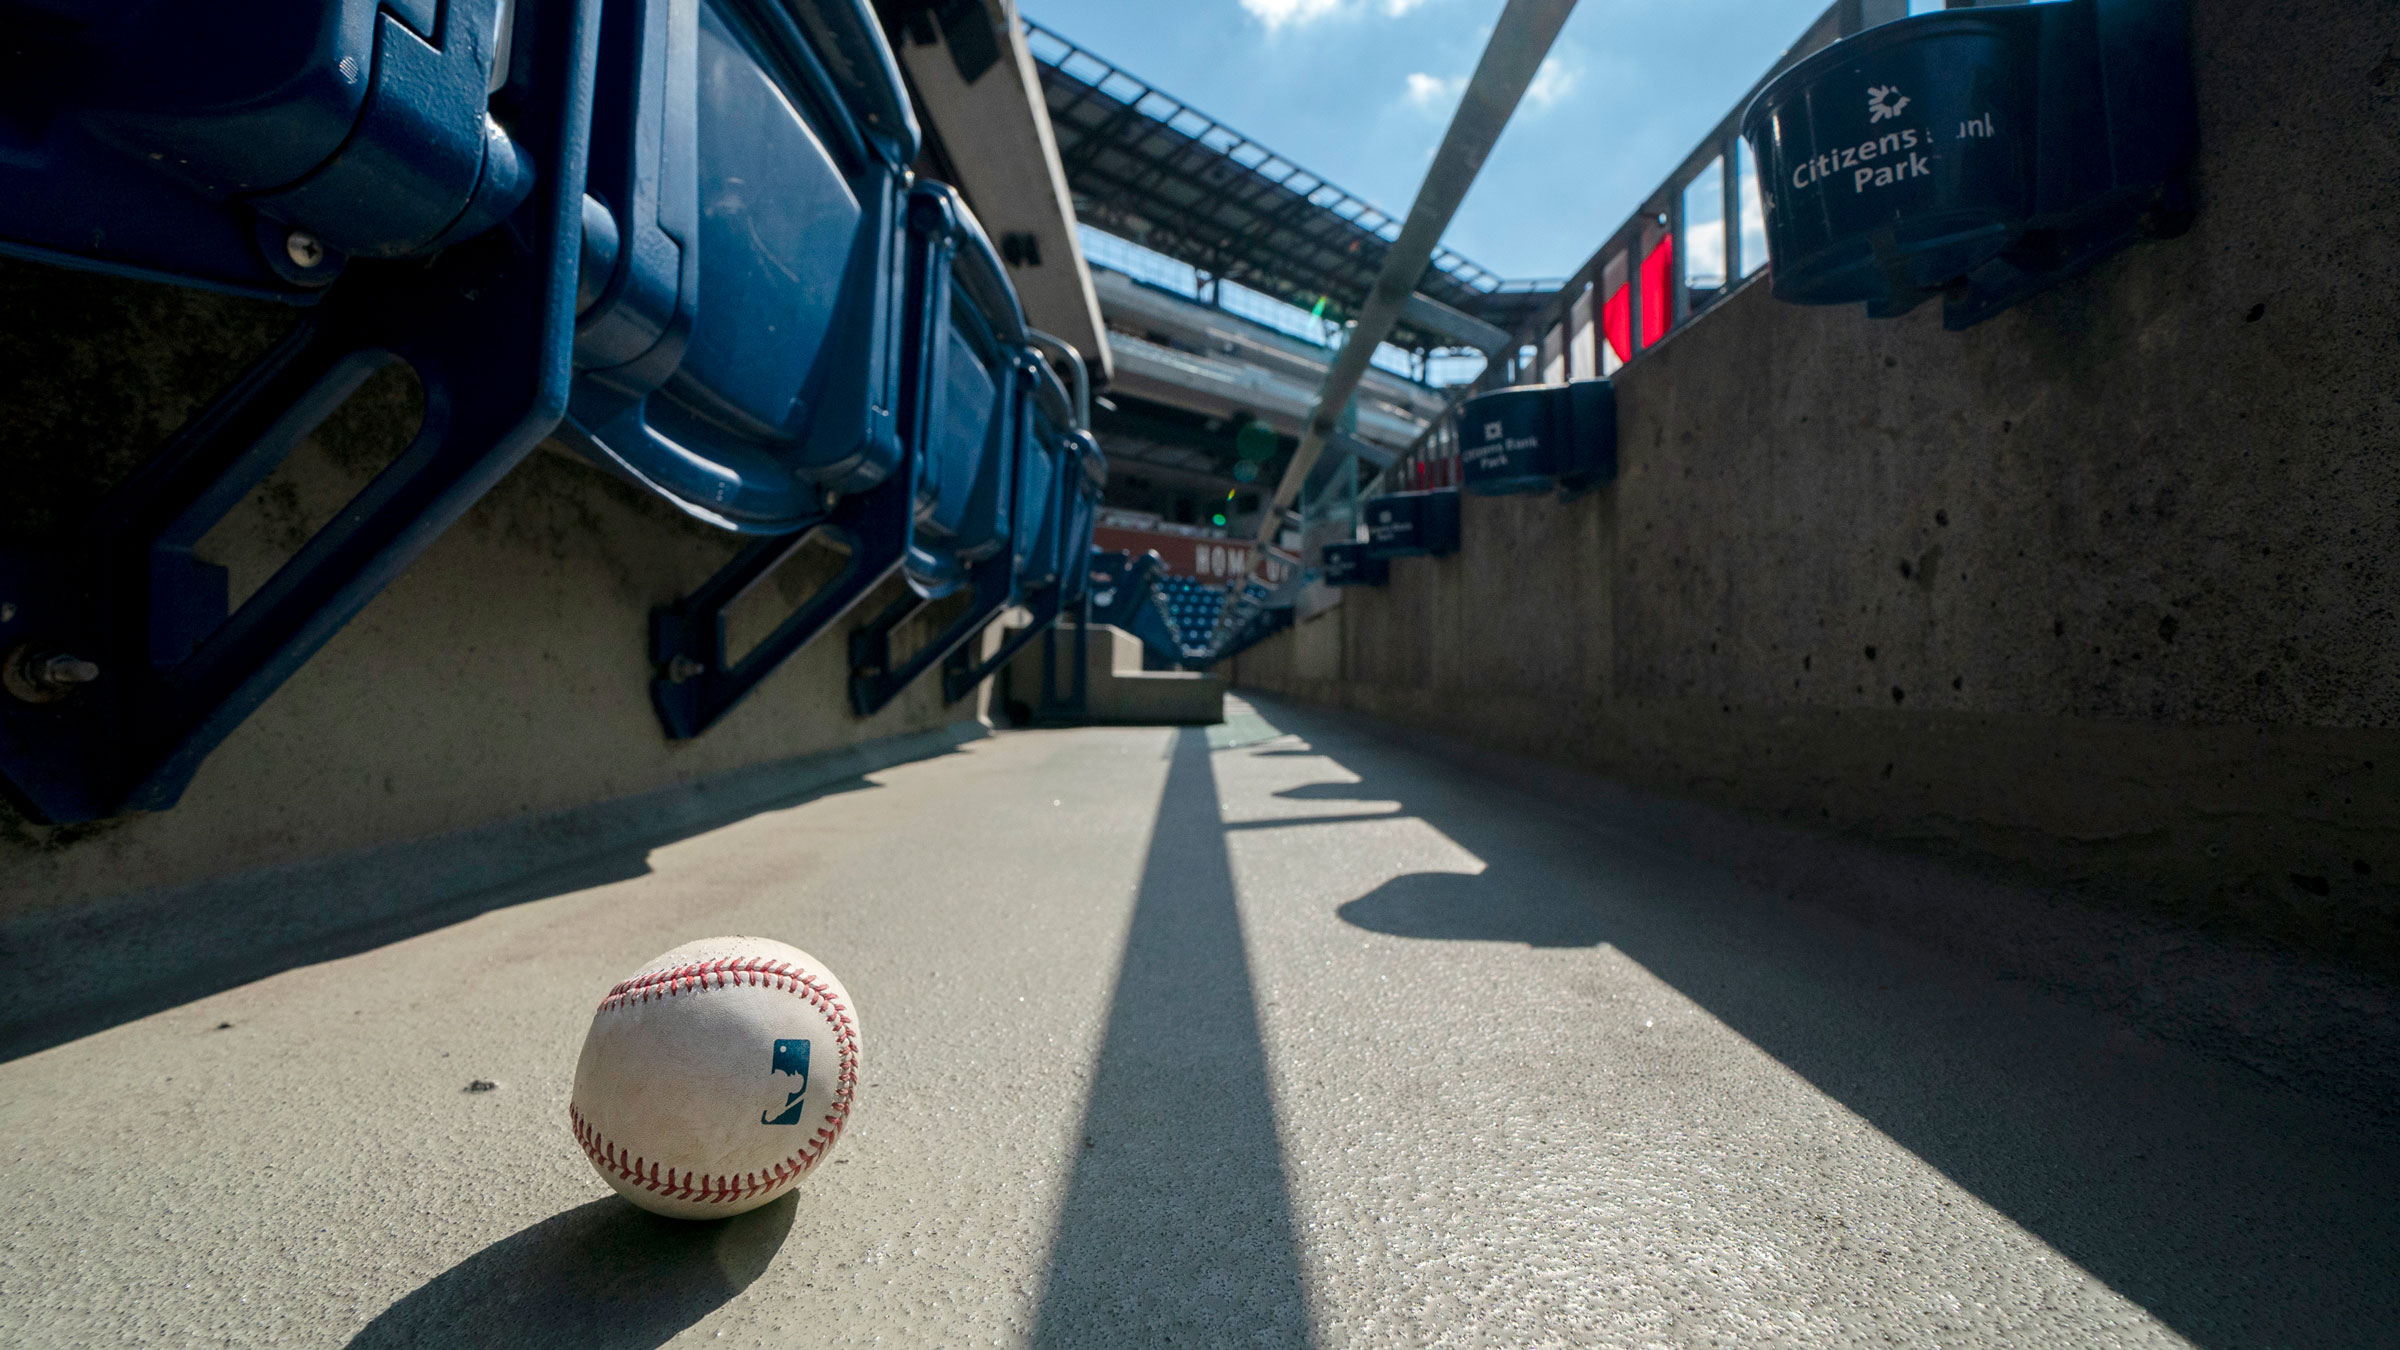 A foul ball sits inside Citizens Bank Park, where the Miami Marlins were playing the Philadelphia Phillies on Sunday.